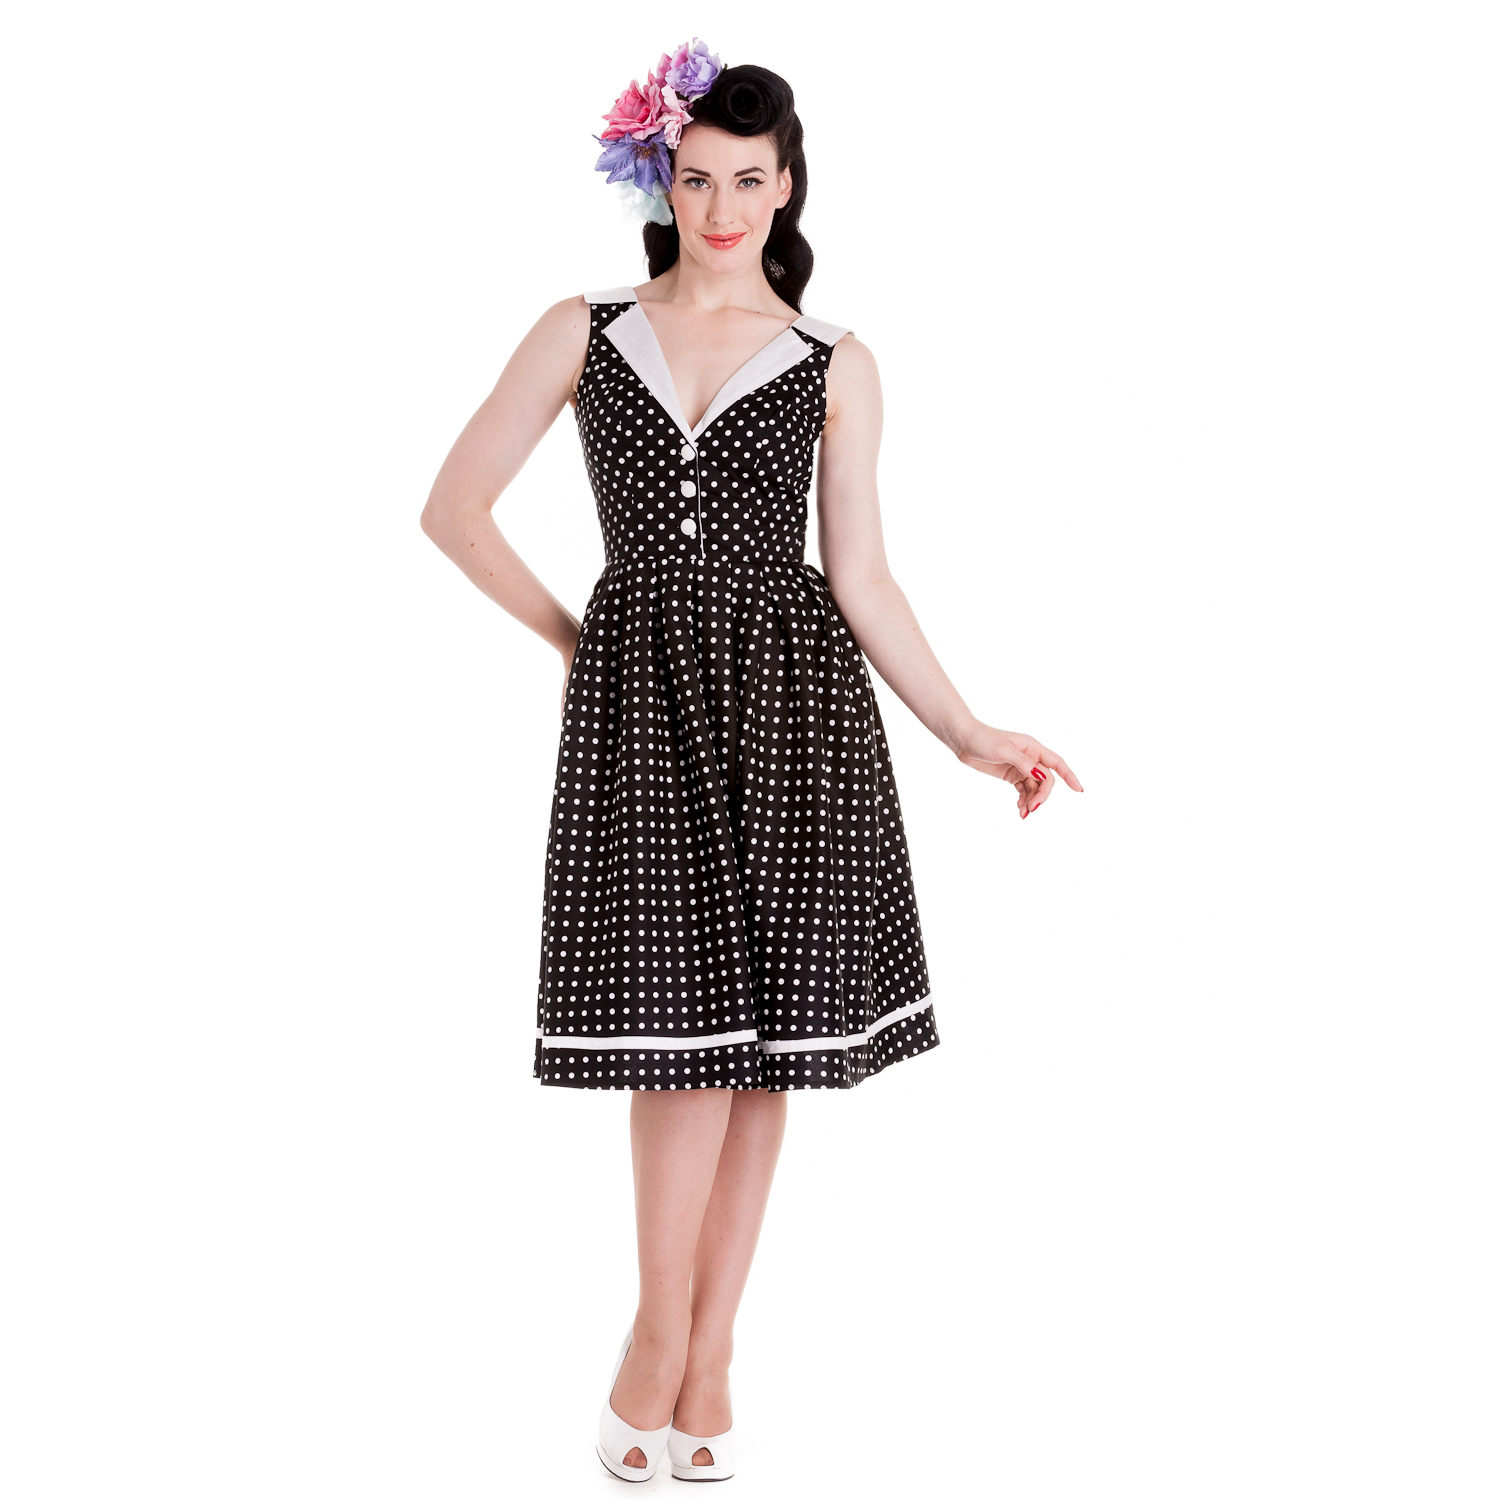 Hell-Bunny-New-Dress-Clearance-Sale-Vintage-Style-50s-Rockabilly-Party-Prom